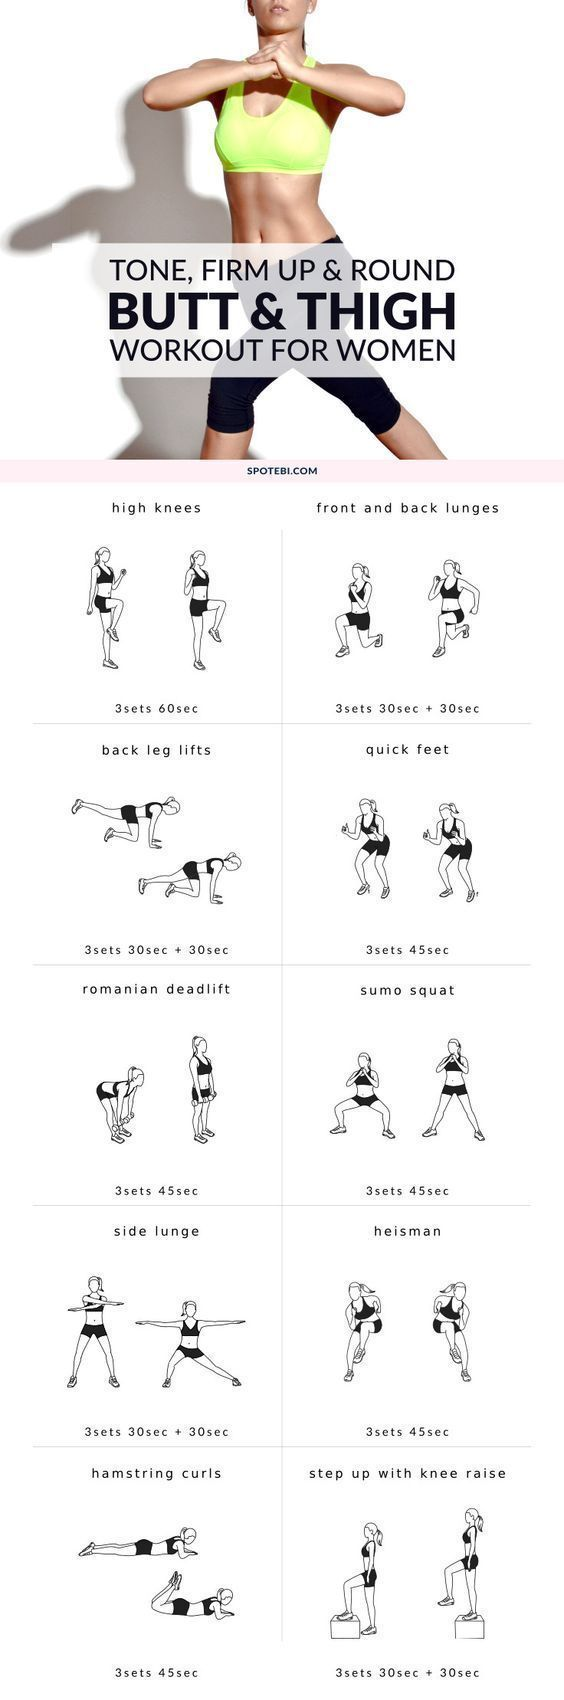 Workout For Women infohraphic